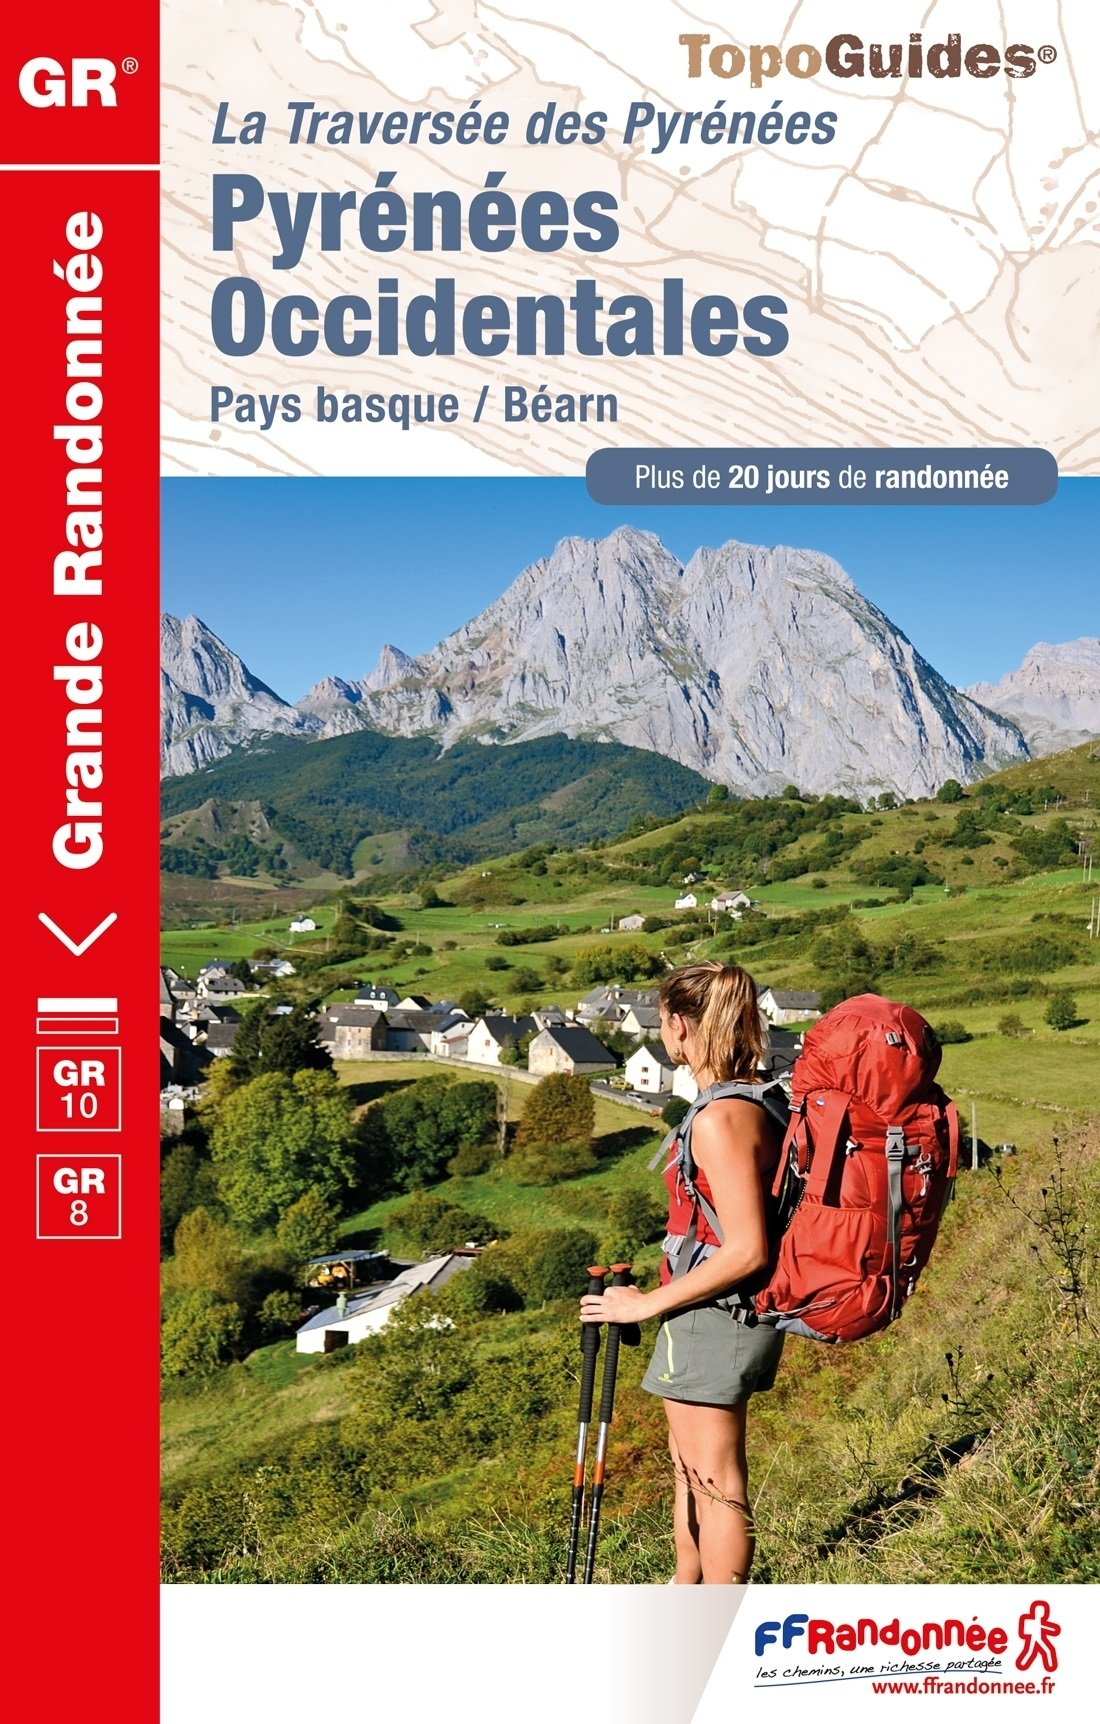 TG1086 Pyrénées Occidentales, GR-10 9782751409844  FFRP Topoguides  Meerdaagse wandelroutes, Wandelgidsen Baskenland, Franse Pyreneeën, Toulouse, Gers, Garonne